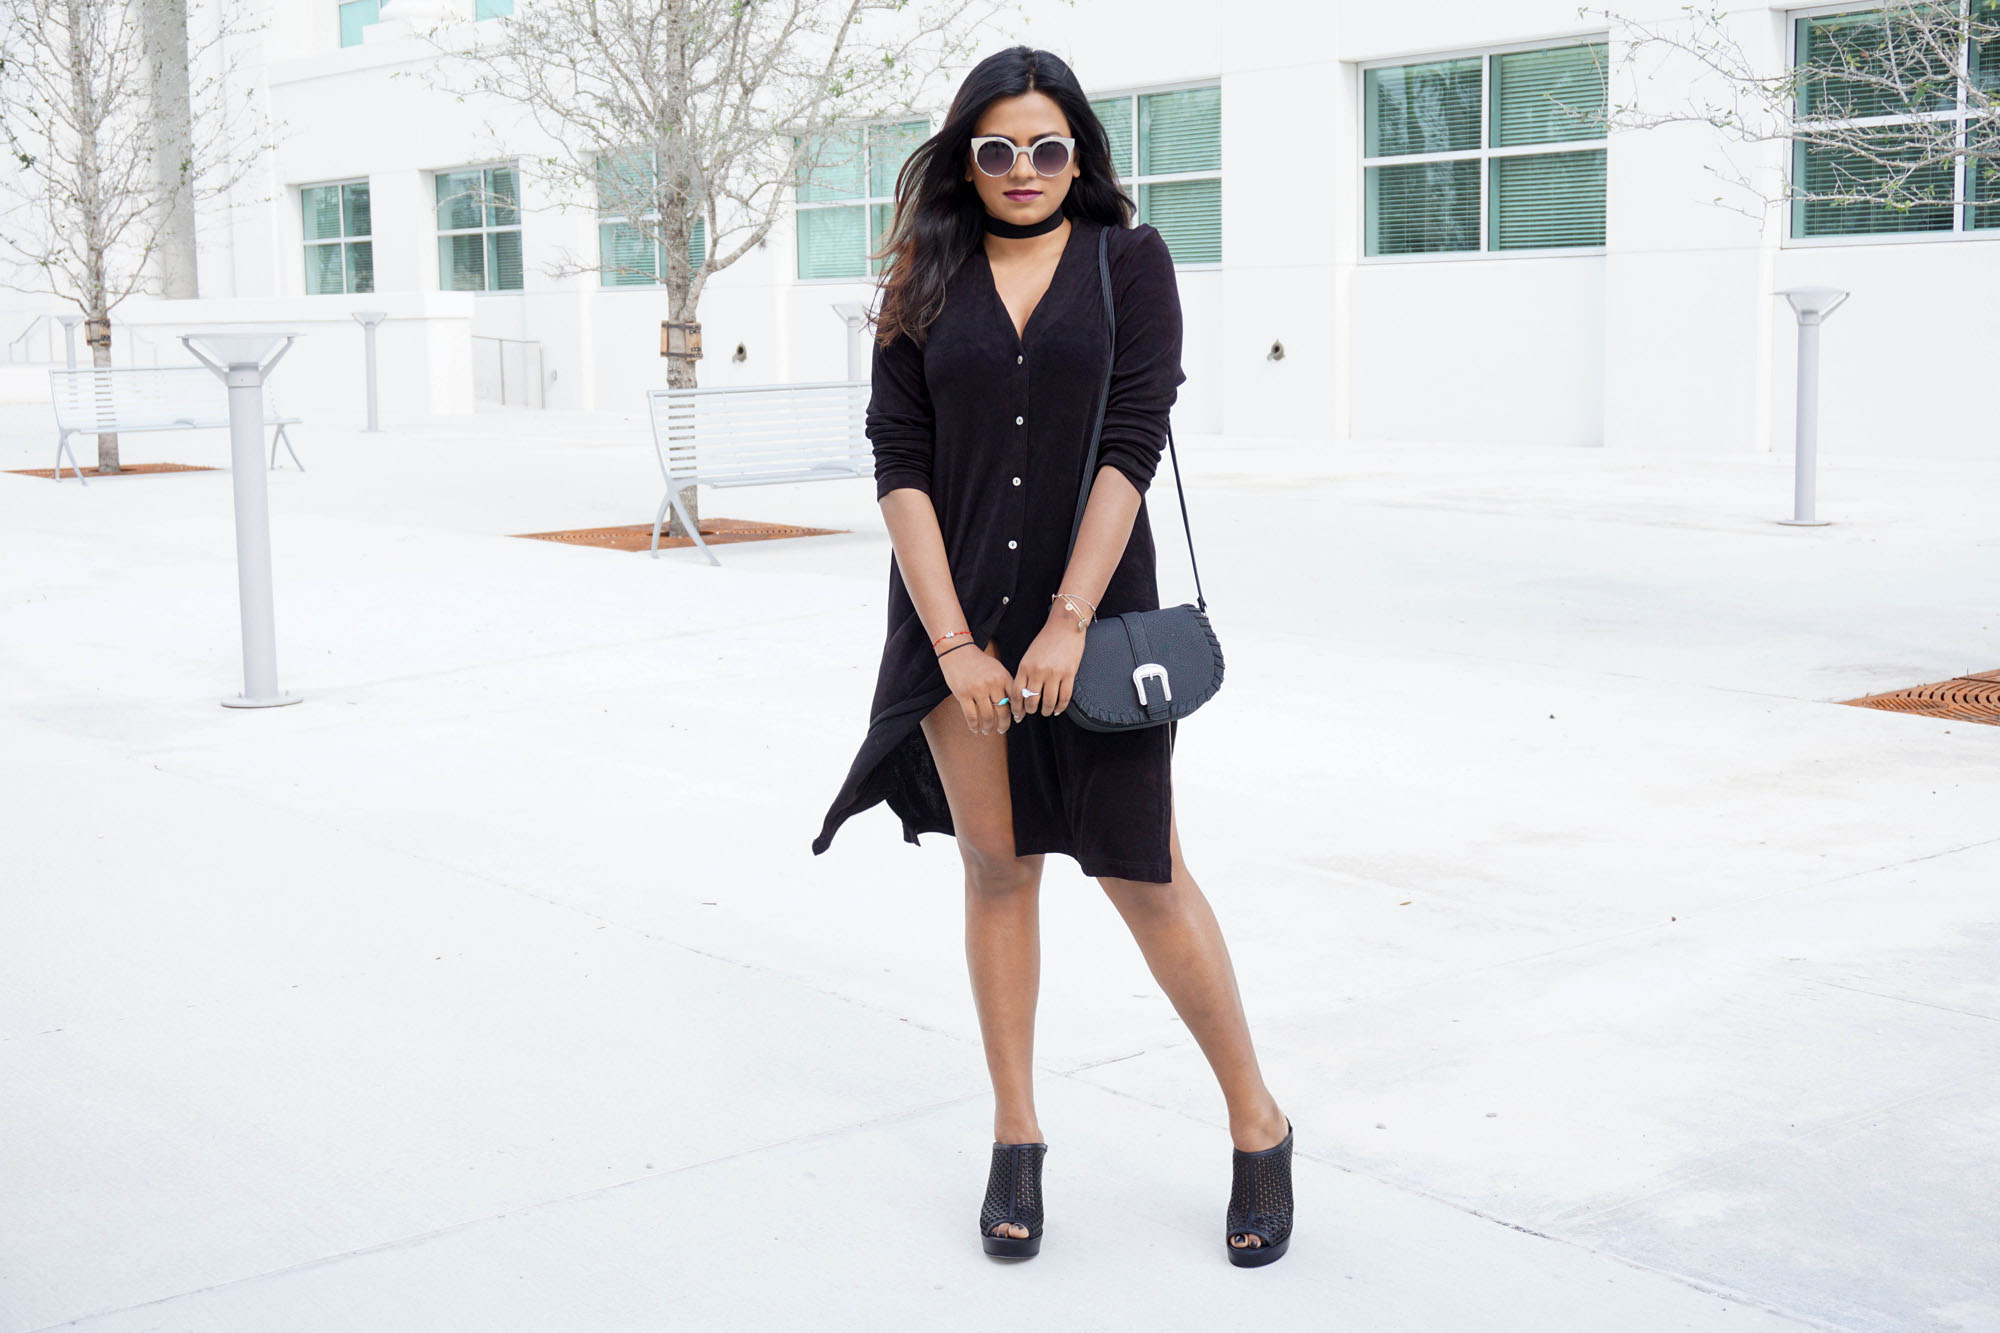 Miami Fashion Blogger Afroza Khan Chic Outfit